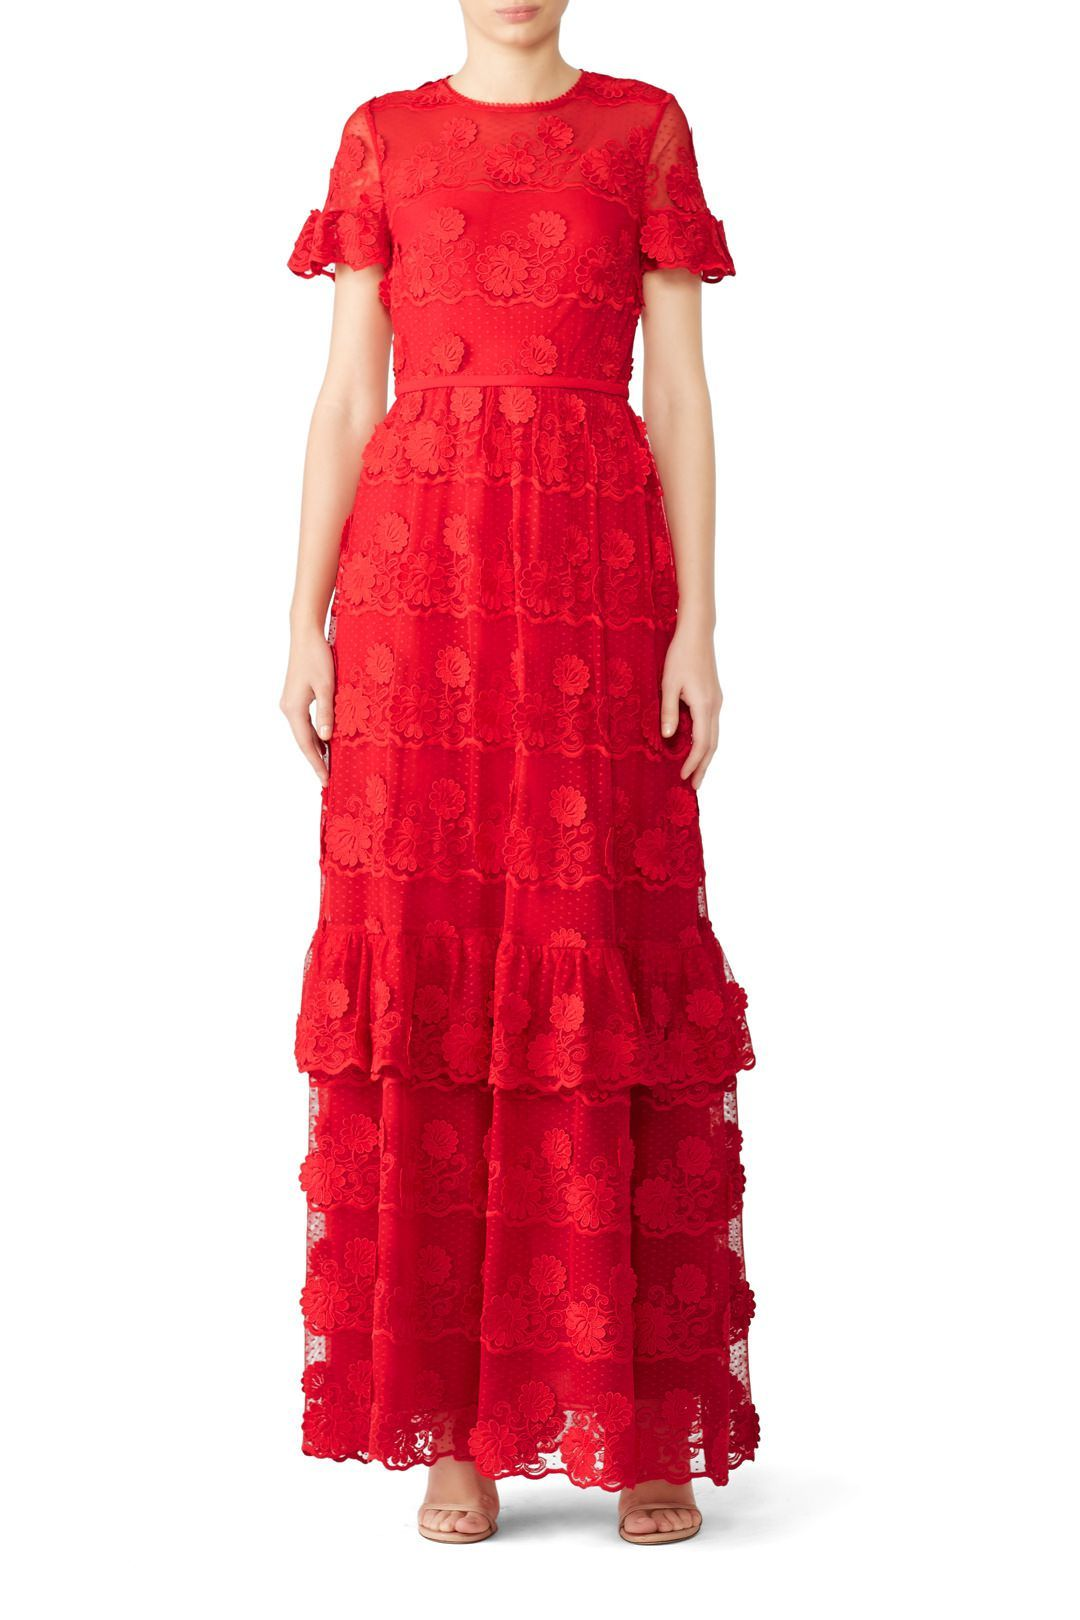 3bd94d0df4 Prom Dress Rental - Where to Rent Prom Dresses for Under  200